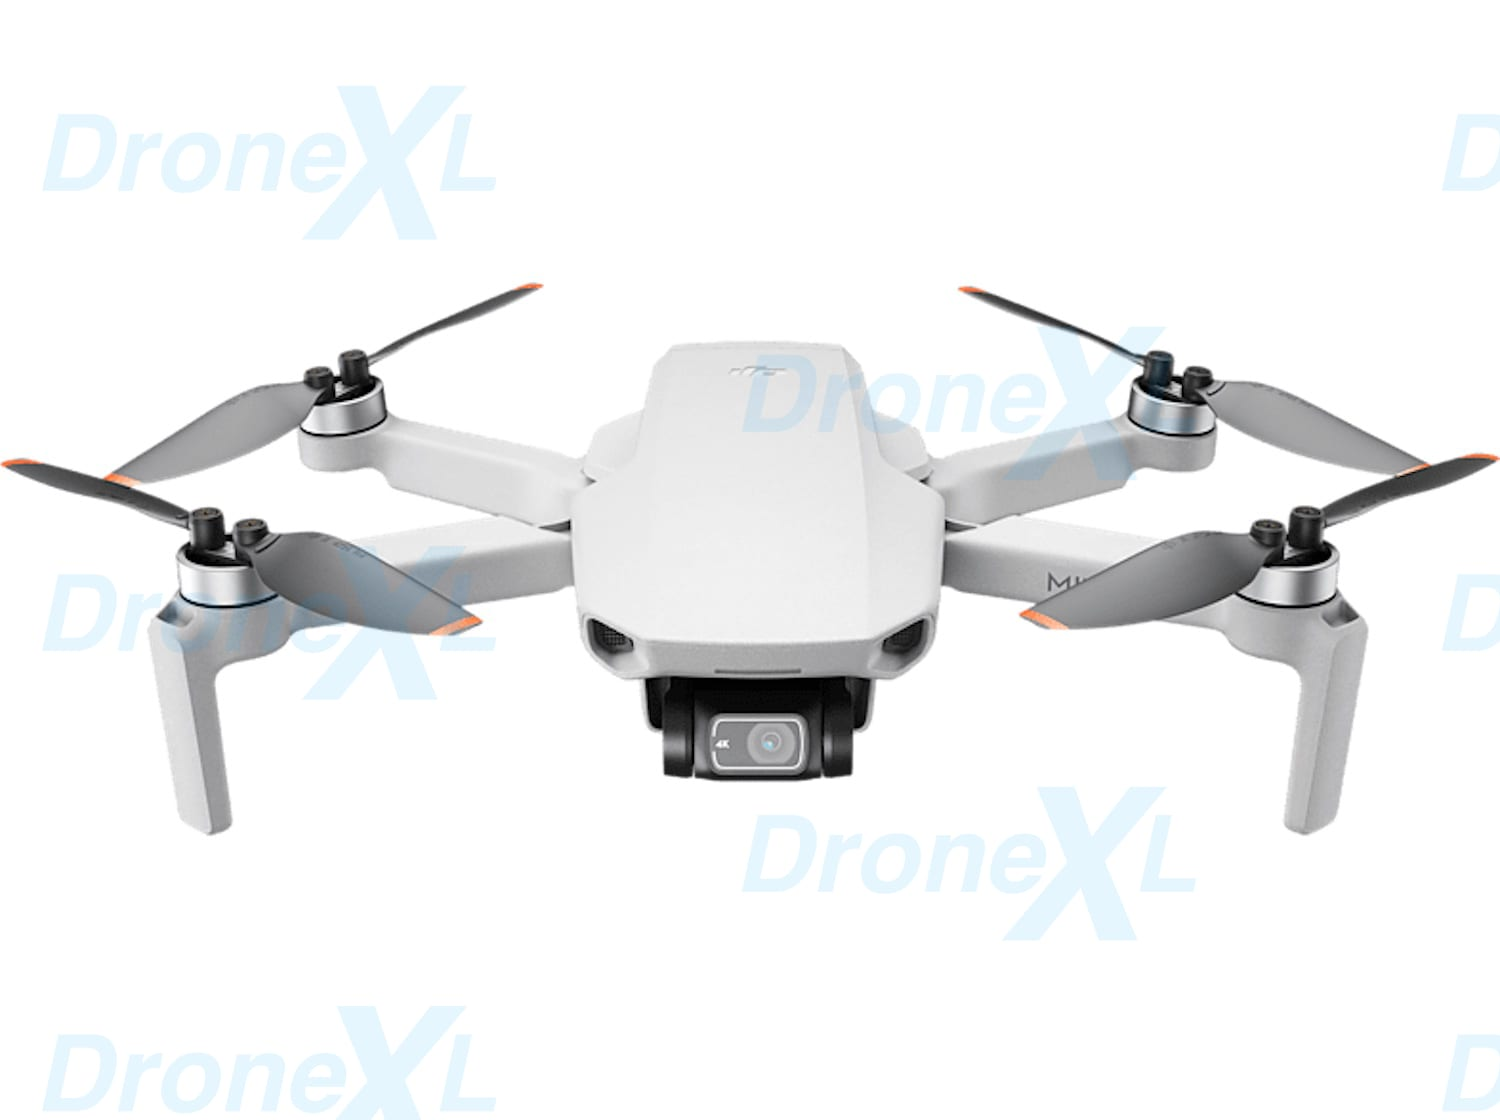 DJI Mini 2 has DNG/RAW and also rumored to shoot 4K video at 100Mbps